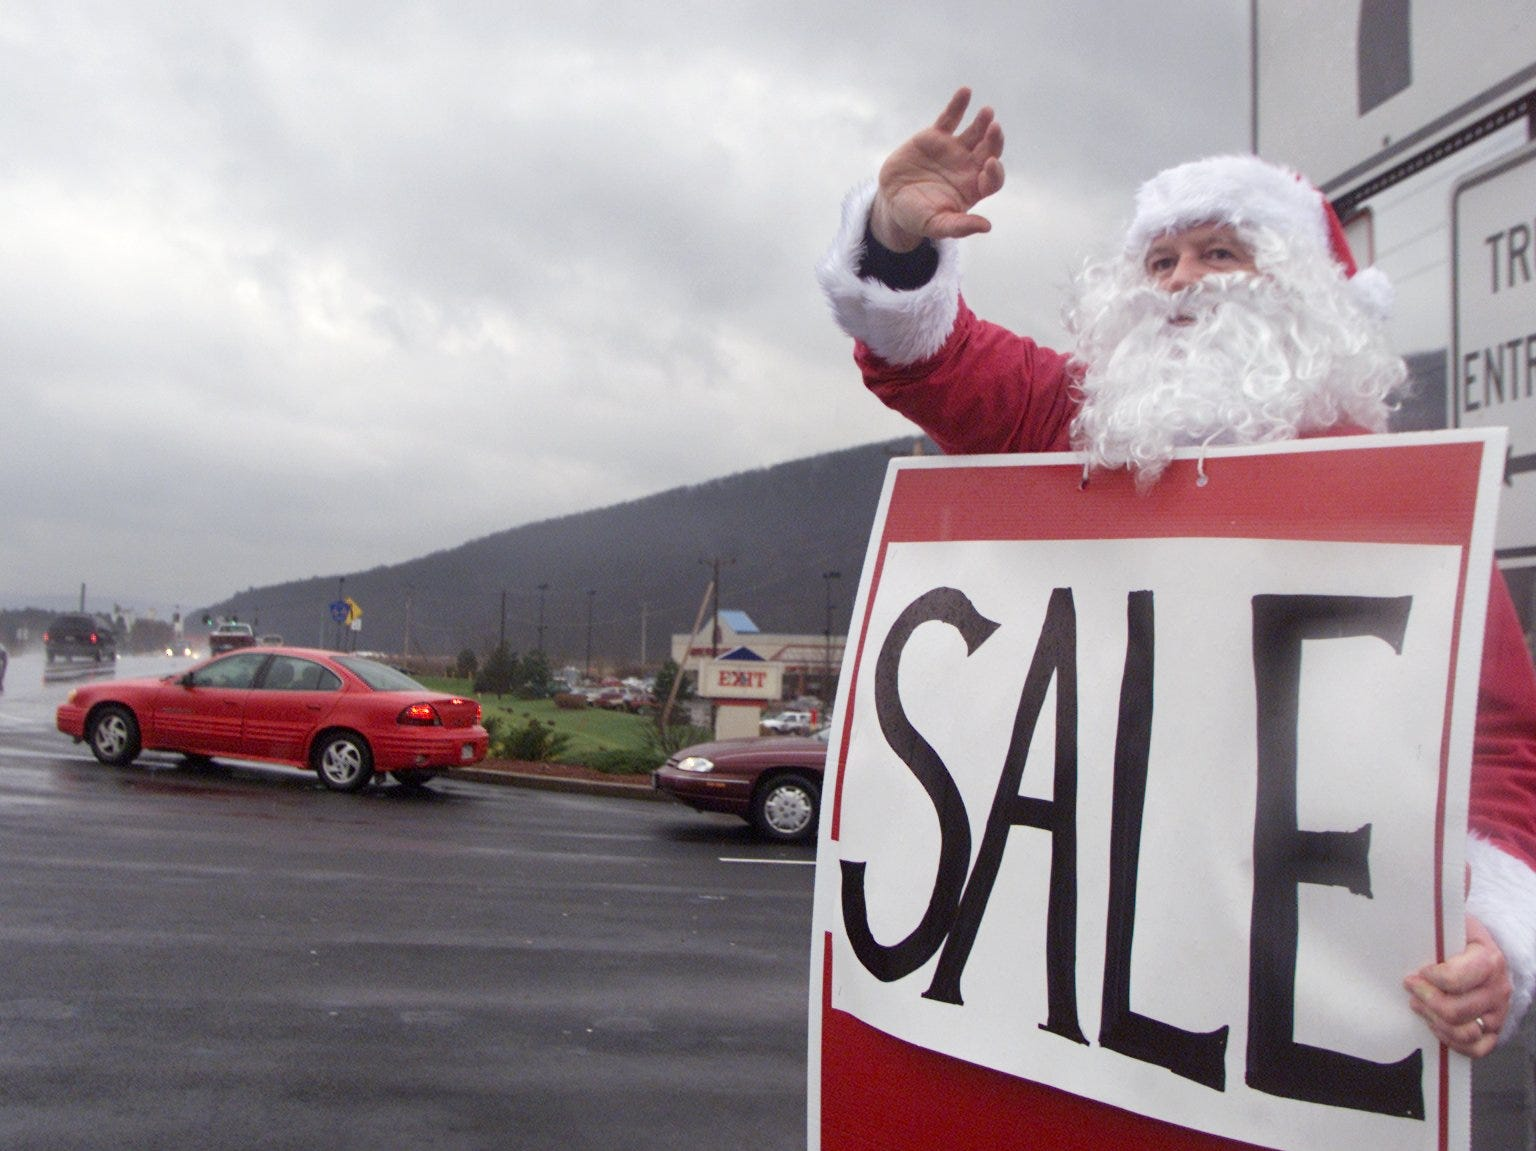 11/29/2003, 1C: Marty Chovanes of Troy, dressed as Santa Claus, waves to passers-by Friday afternoon at the entrance to Consumer Square in Big Flats, where he entices shoppers into Fashion Bug with a large sale billboard